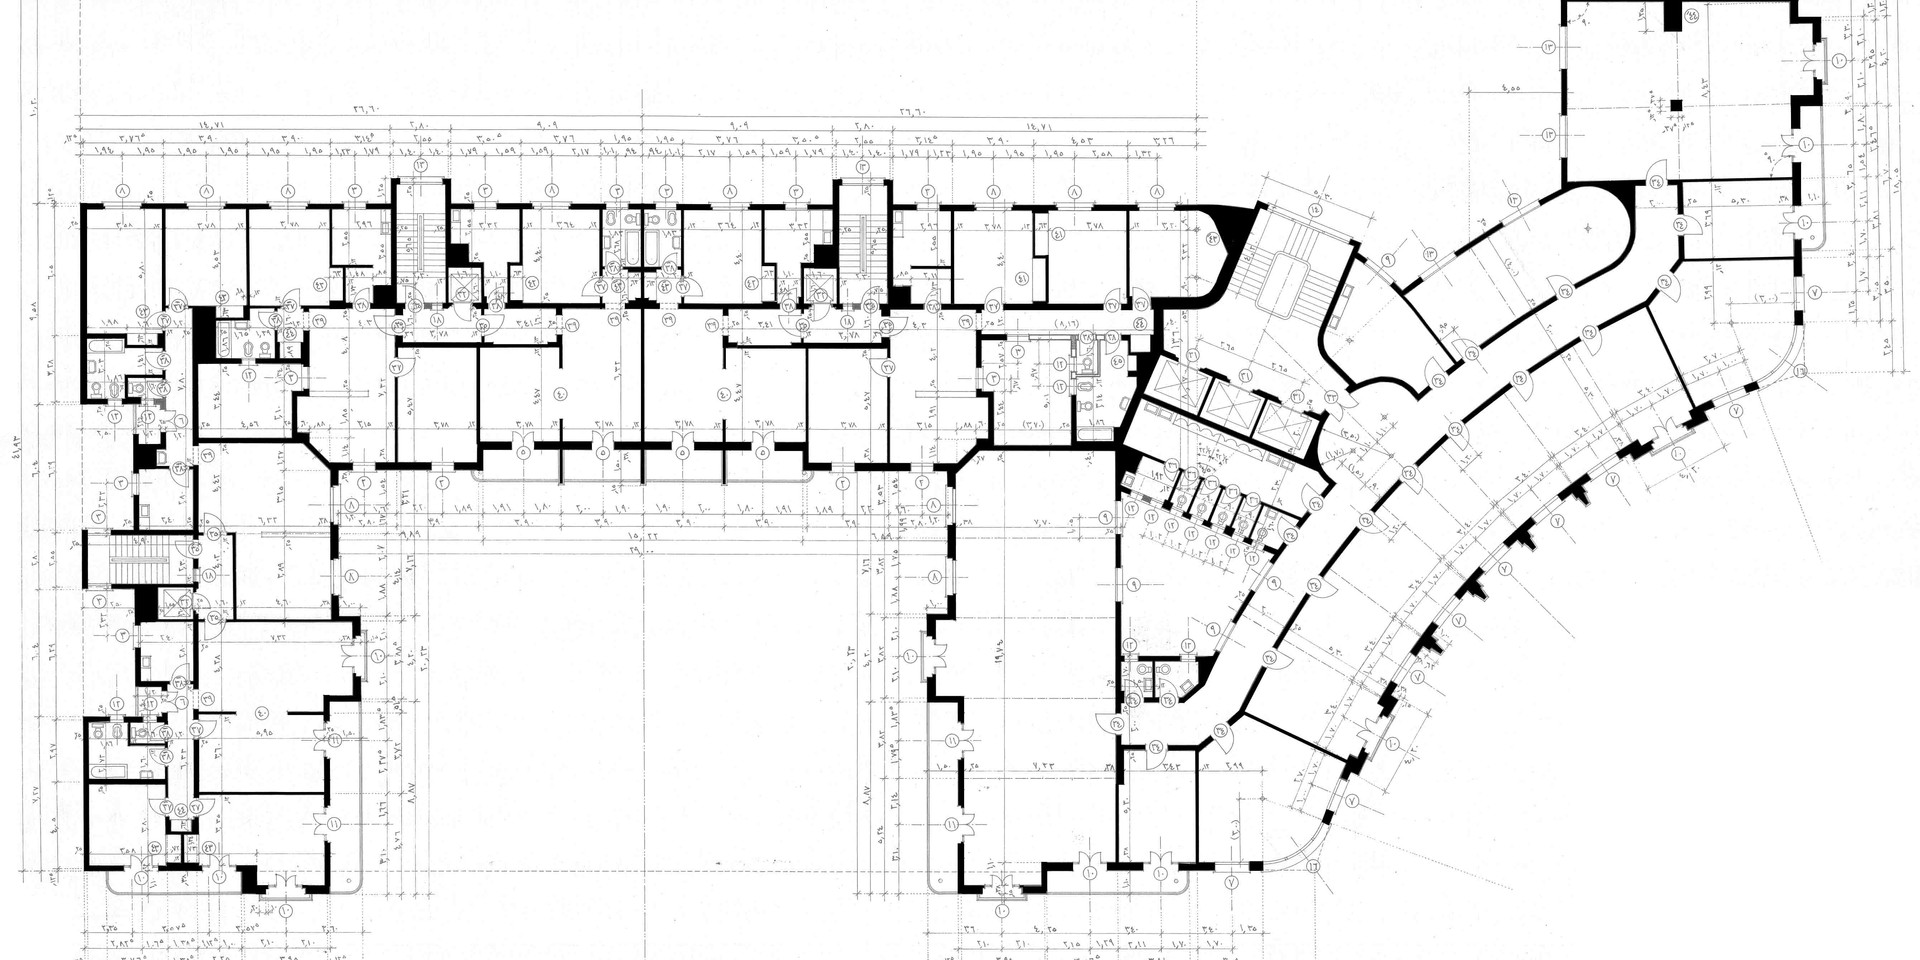 Misr Insurance Lazoghly Office Ground Floor Plan